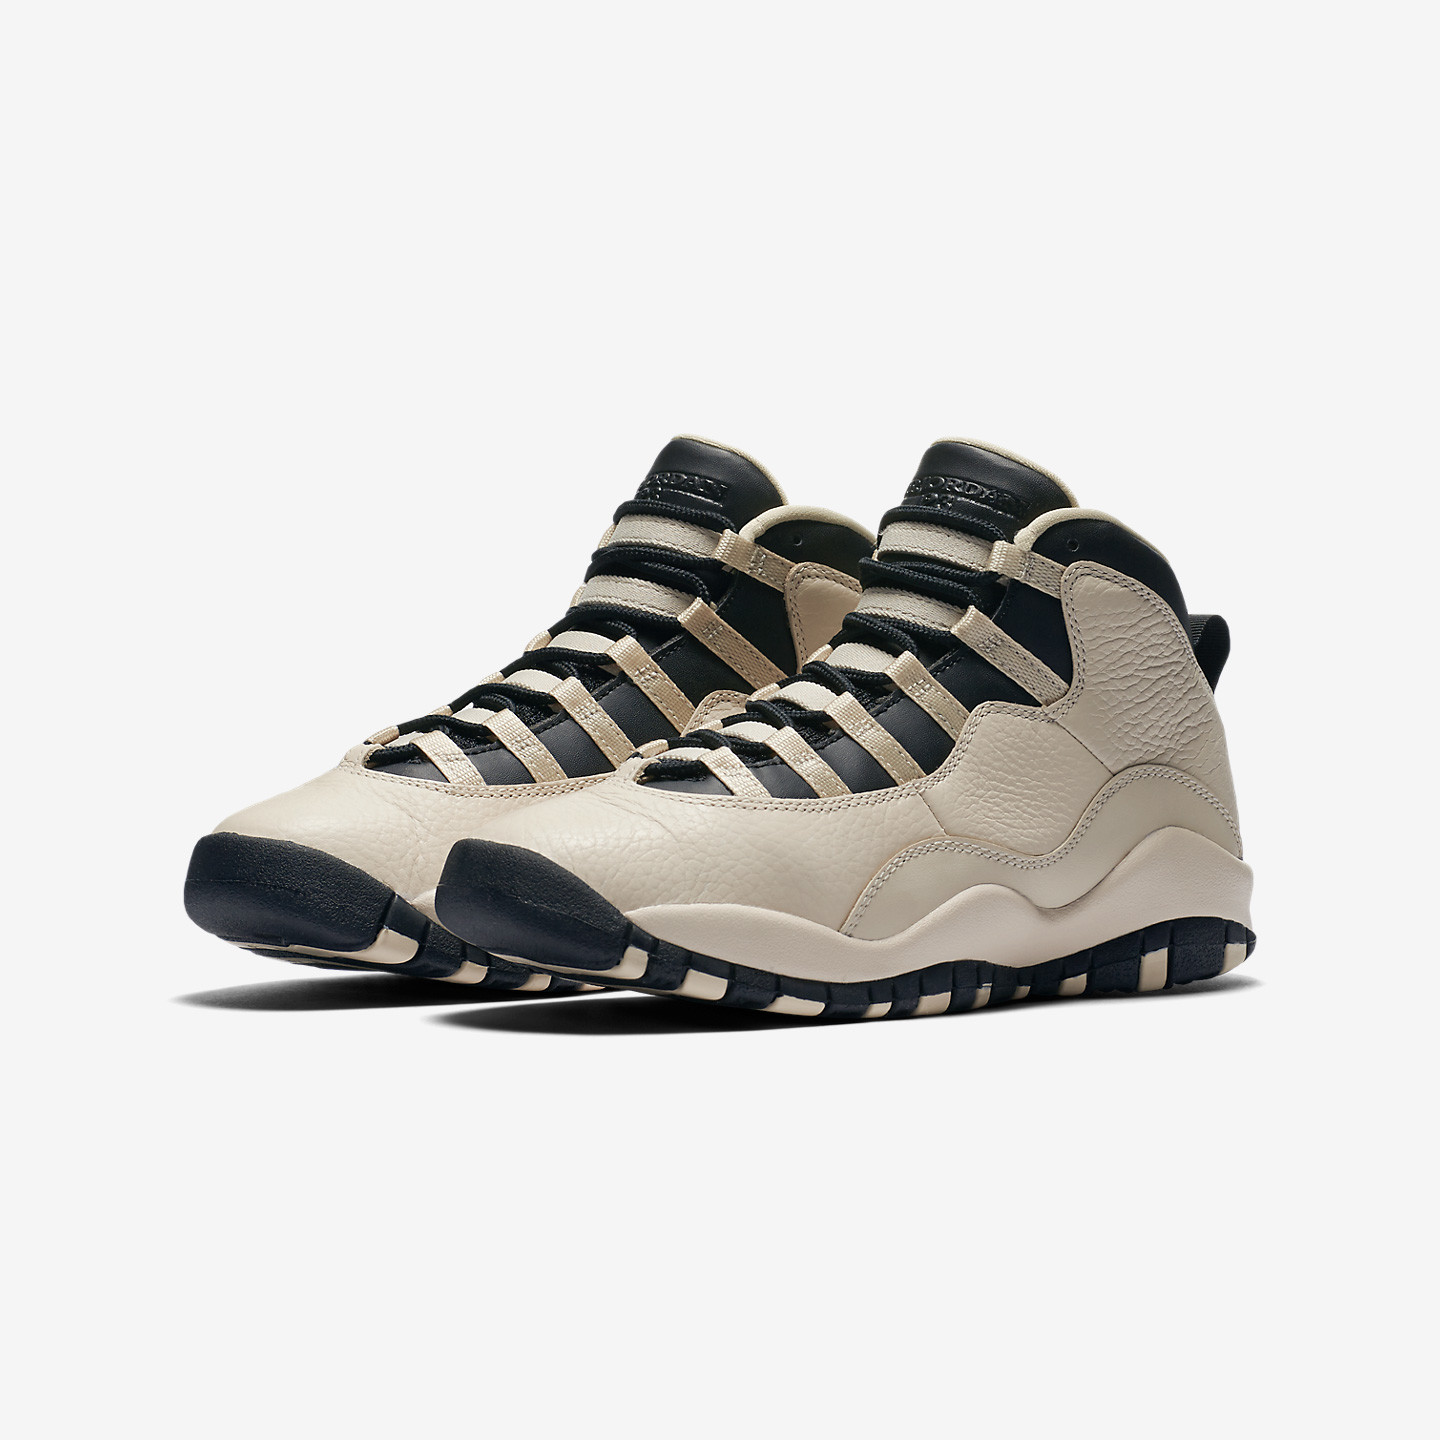 Jordan Air Jordan 10 Retro Premium GG Pearl White / Black 832645-207-42